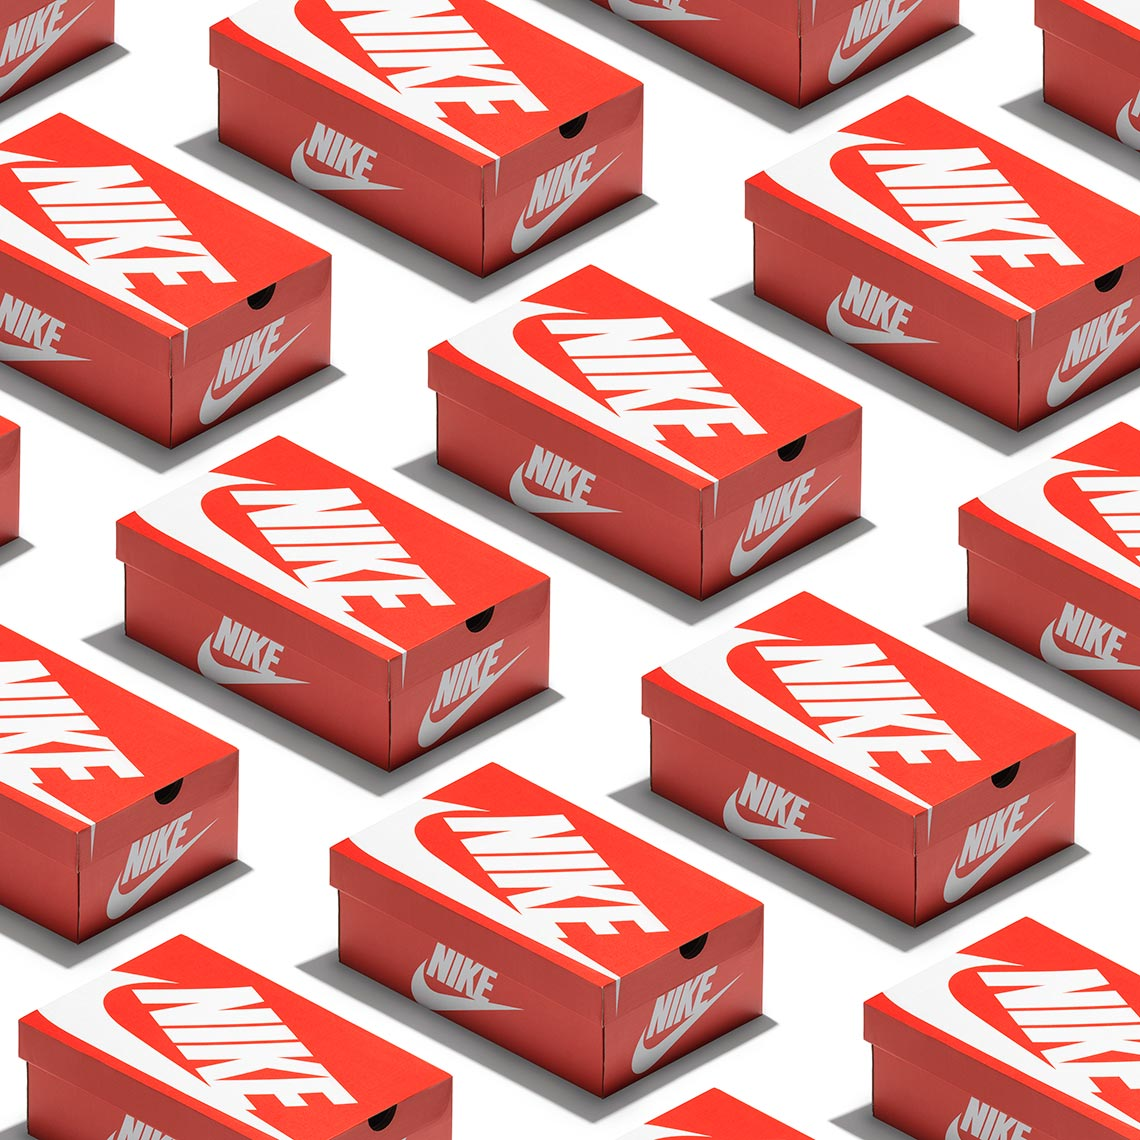 graphic pattern of nike shoe boxes